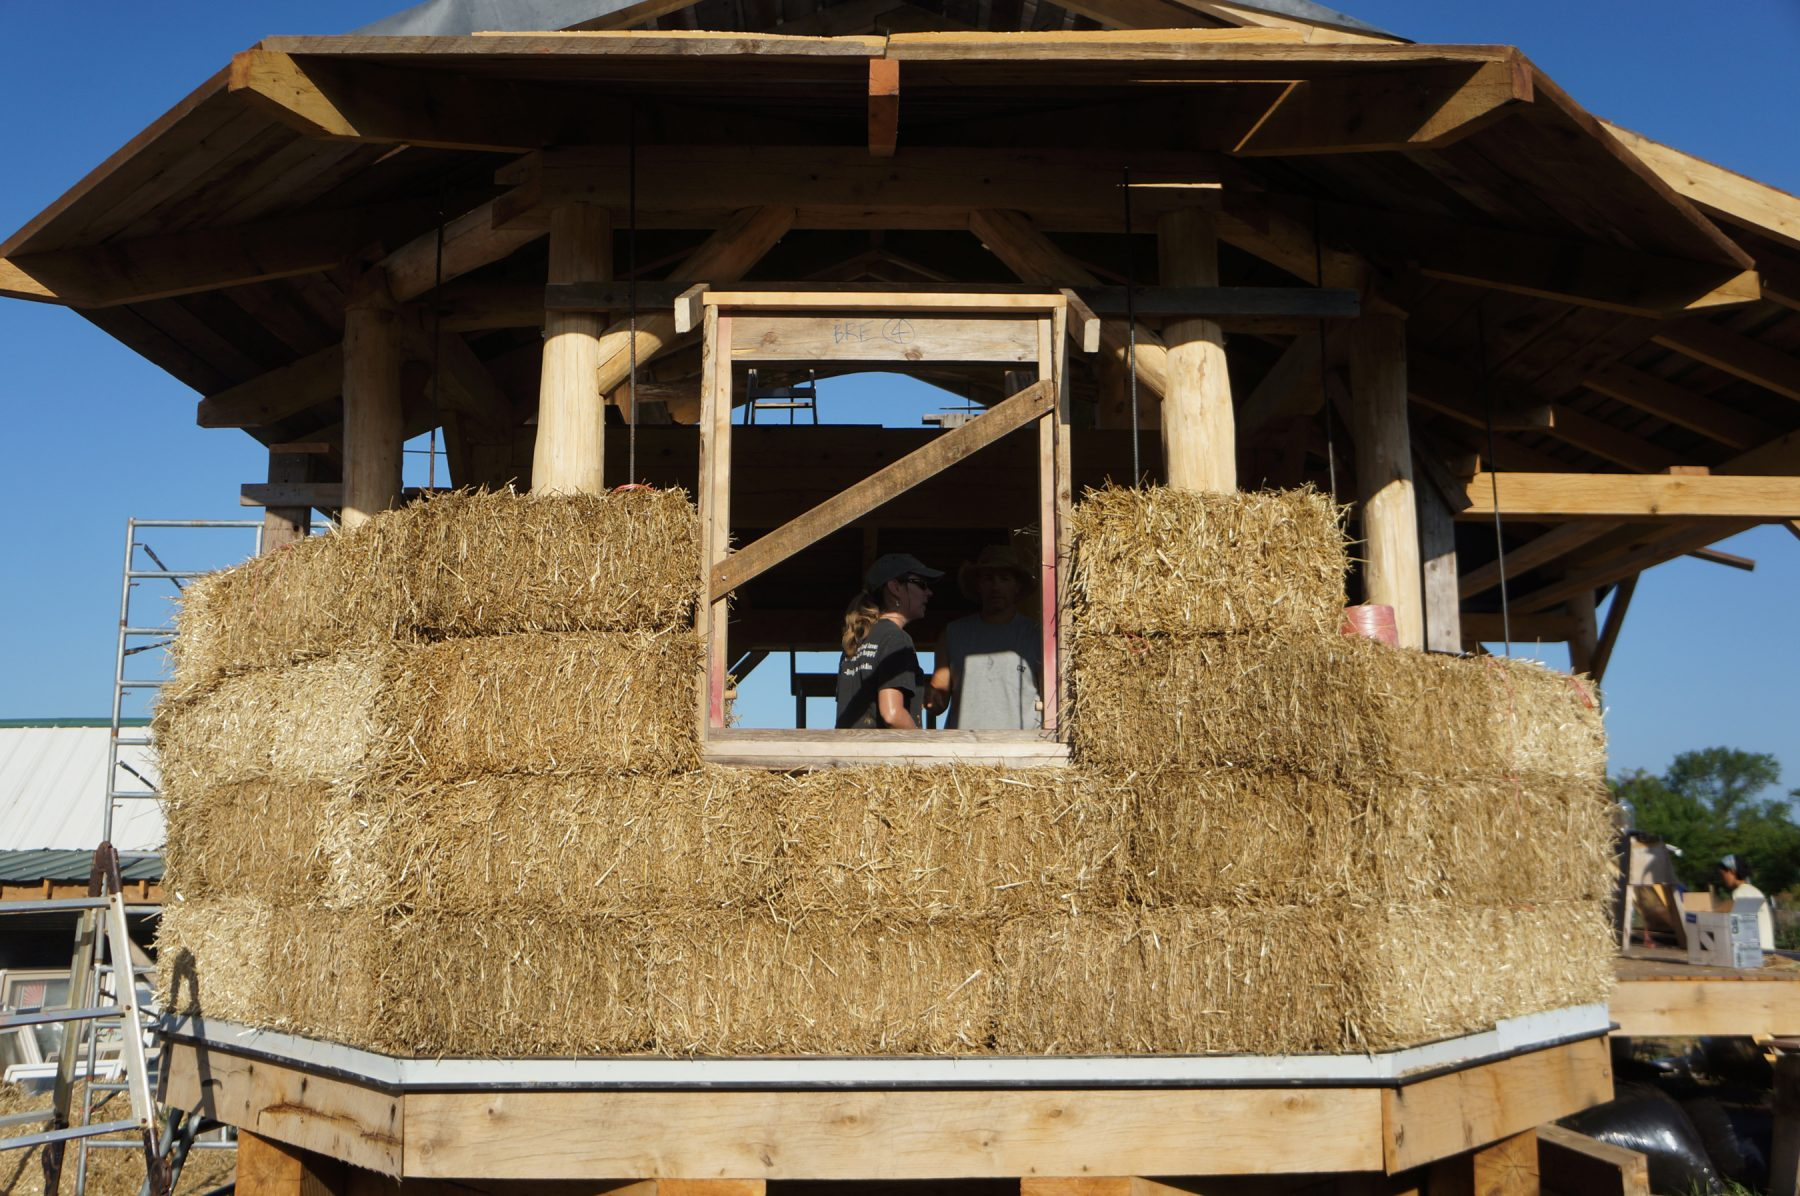 Advantages of a timber frame and straw bale house the for Timber frame straw bale house plans